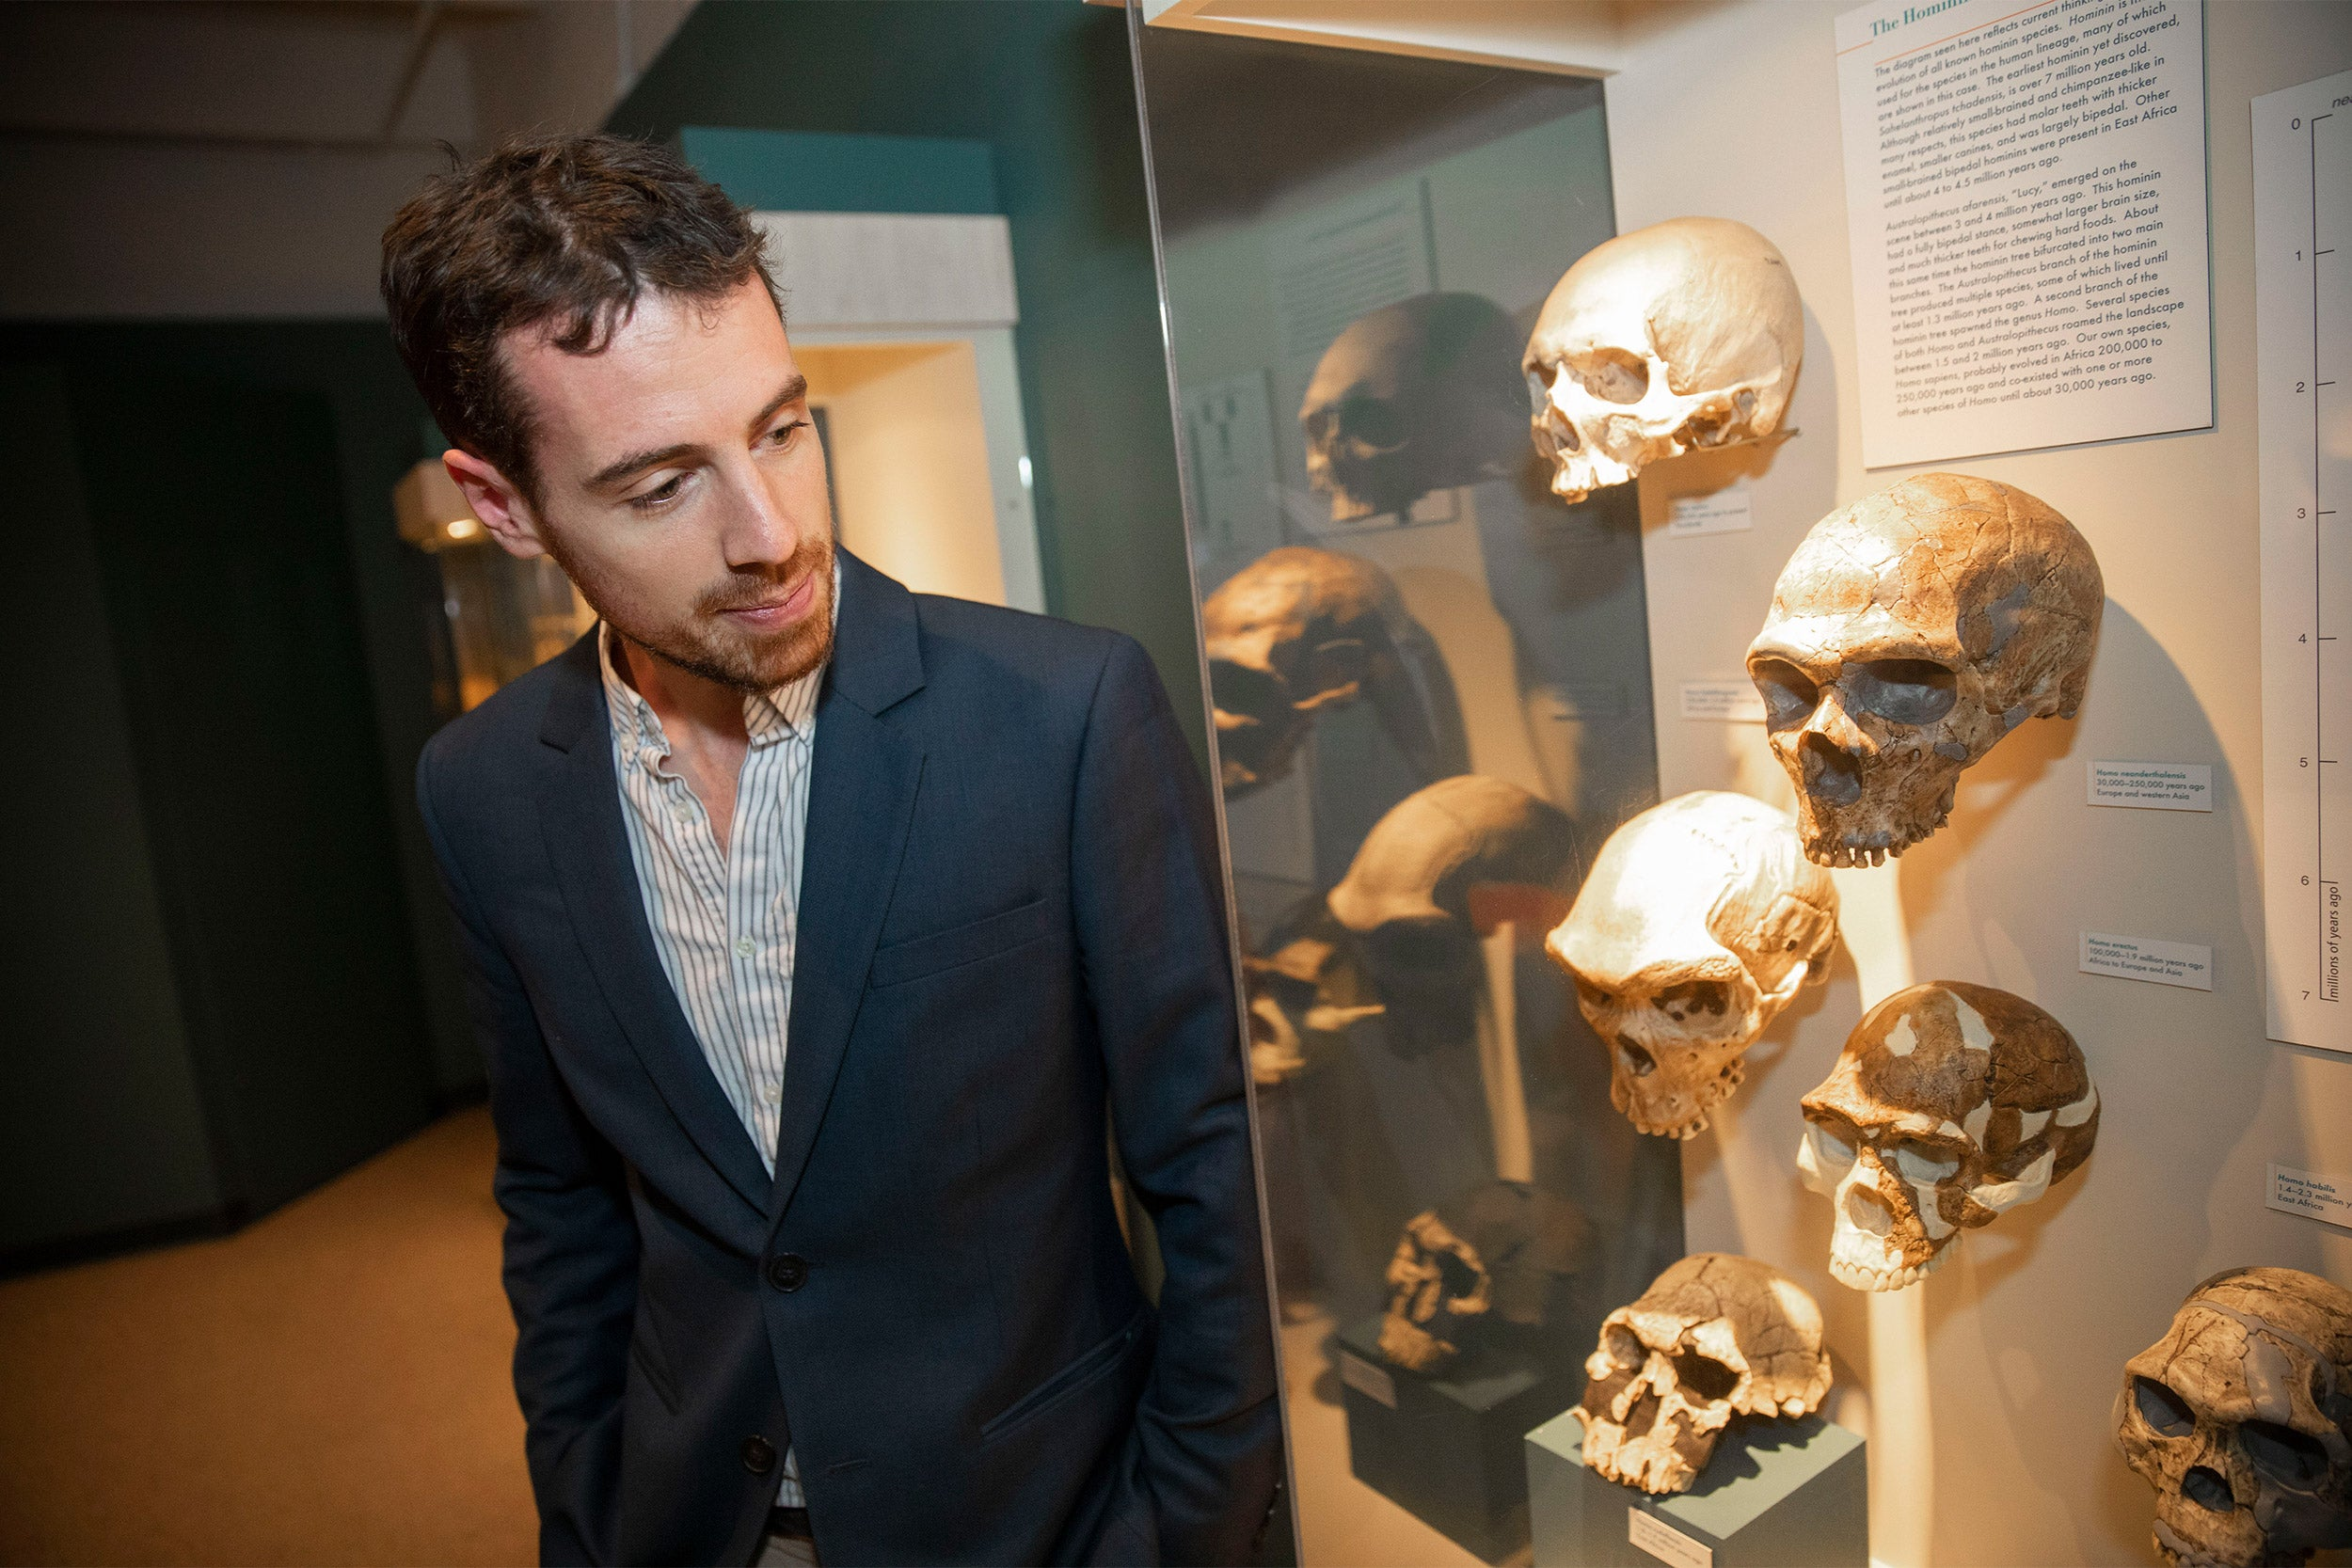 Teeth may be an important new resource for understanding the lives of our extinct relatives, said Daniel Green, a postdoctoral fellow at the Forsyth Institute, an affiliate of Harvard Dental School of Medicine.